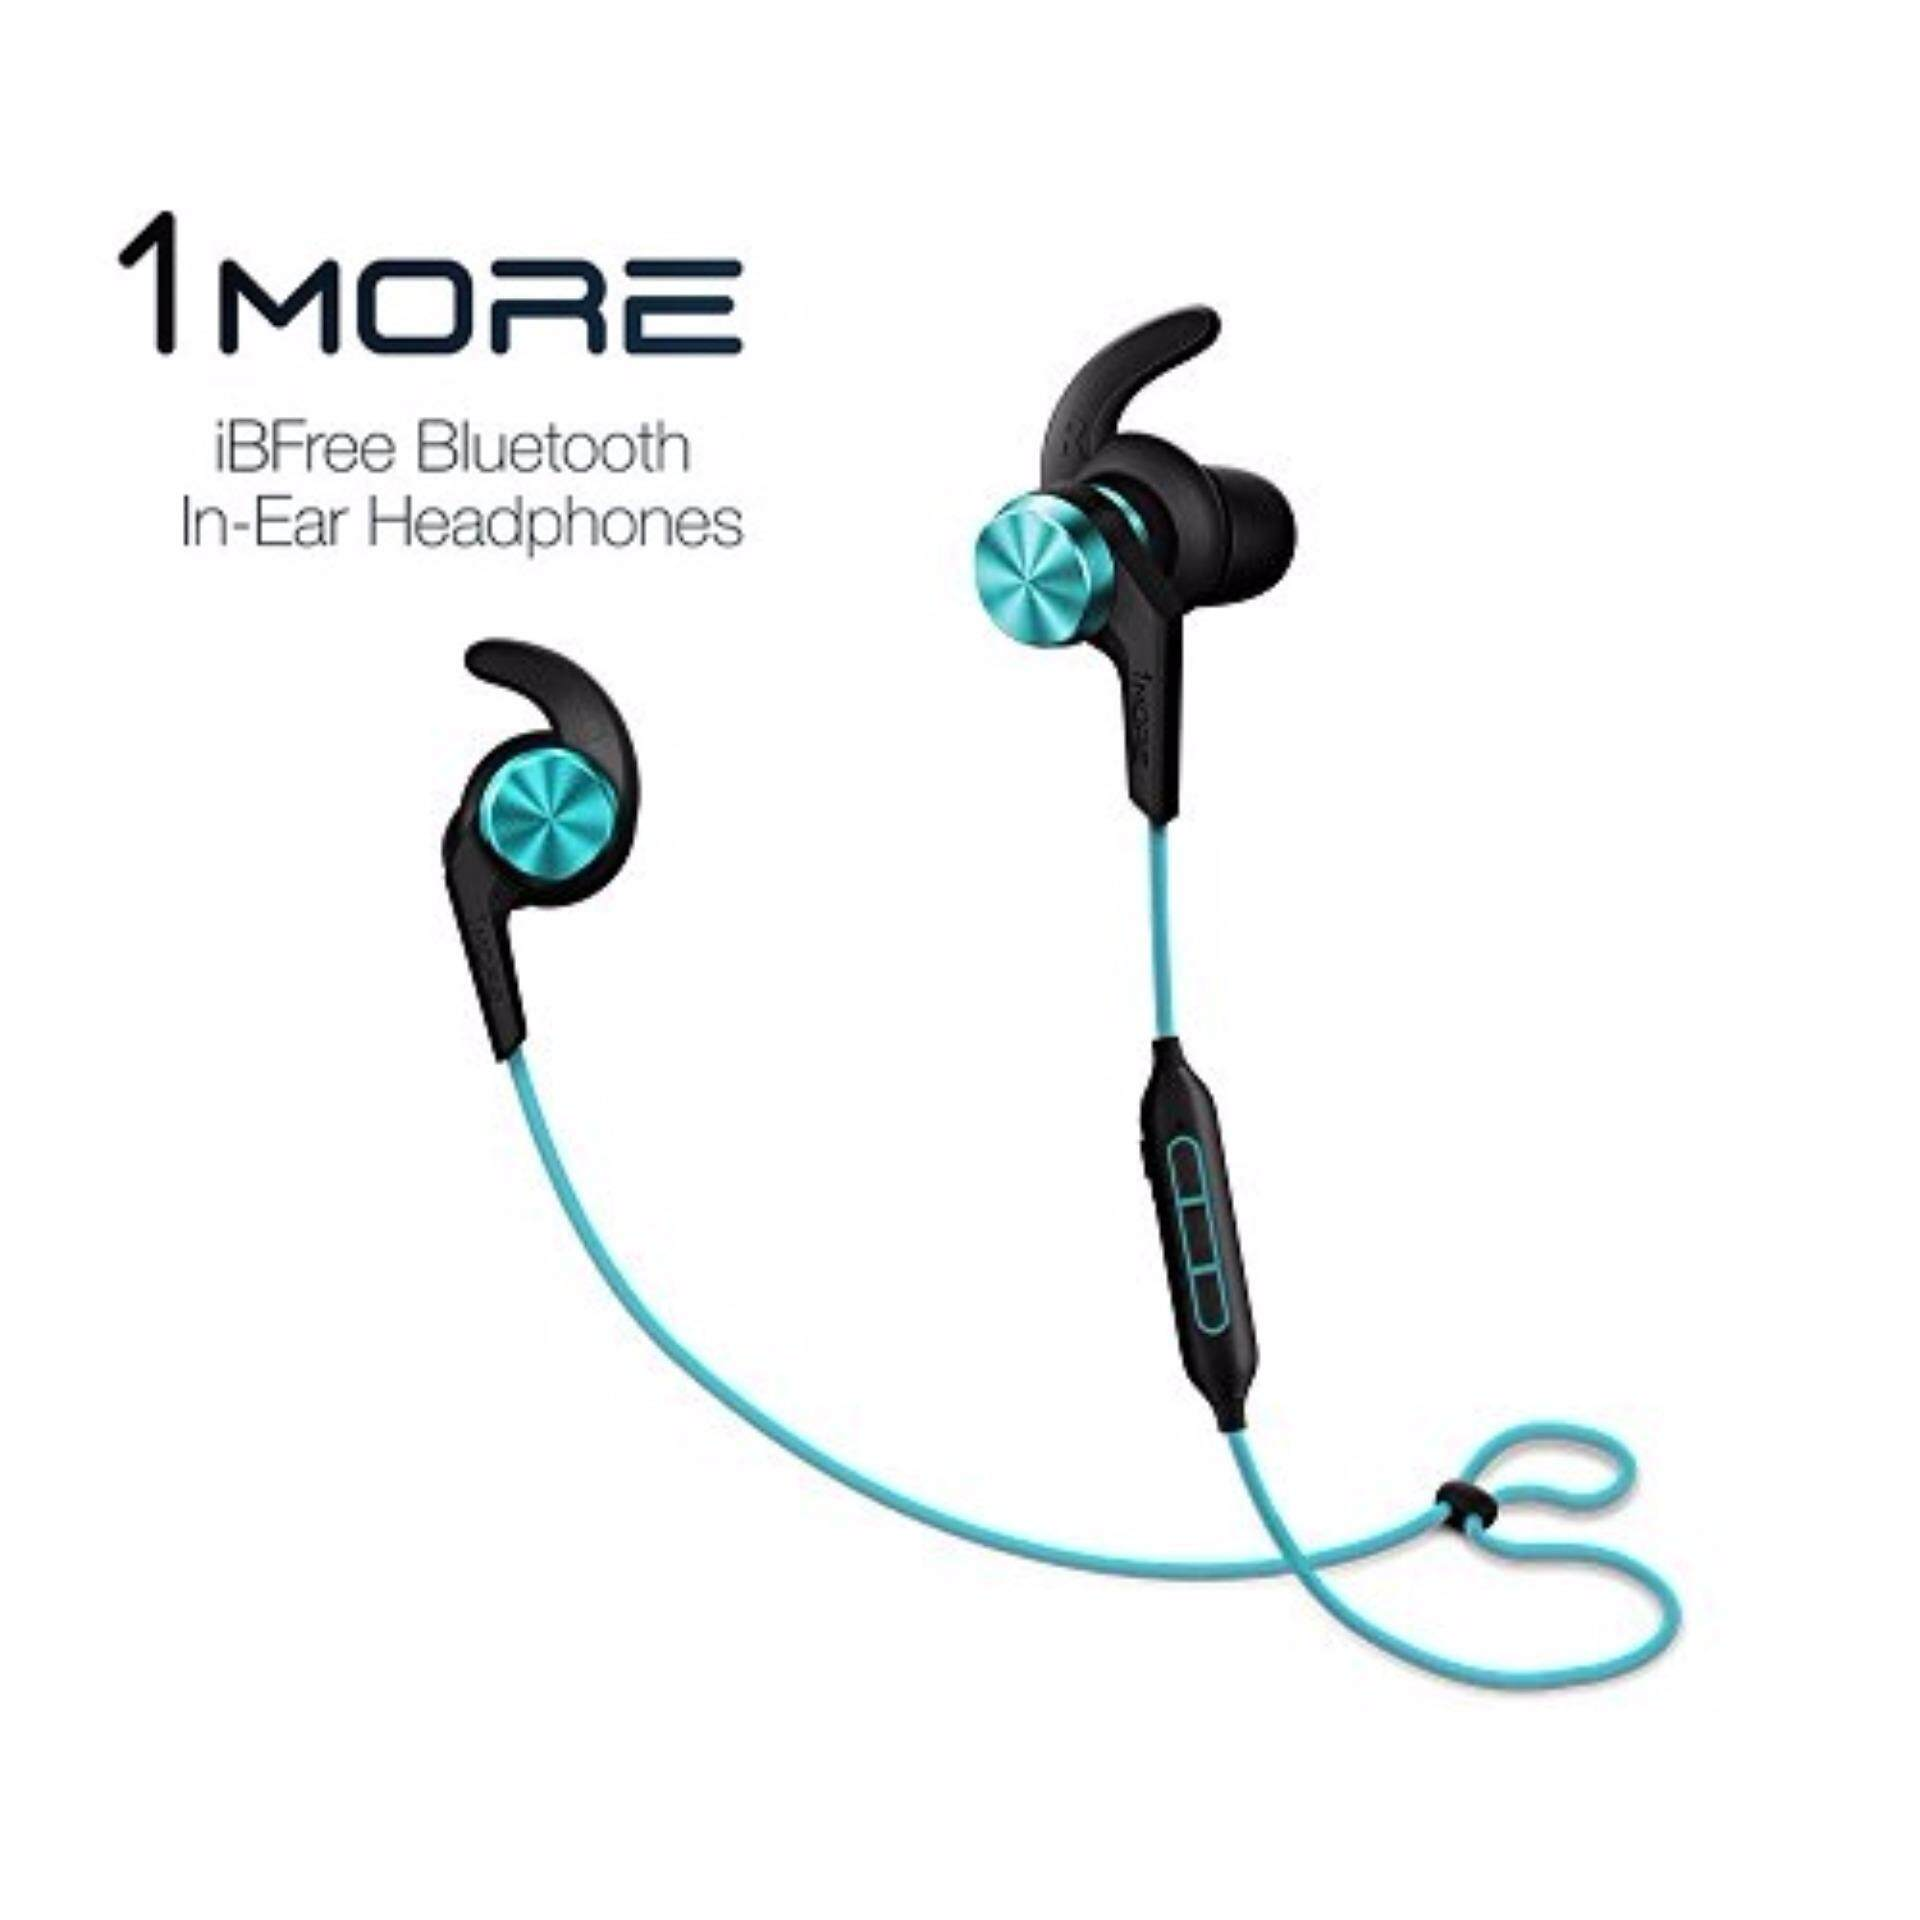 1more Buy At Best Price In Malaysia Earphone Ear Piston Fit Original Xiaomi Ibfree Bluetooth Sport Headphones Imported